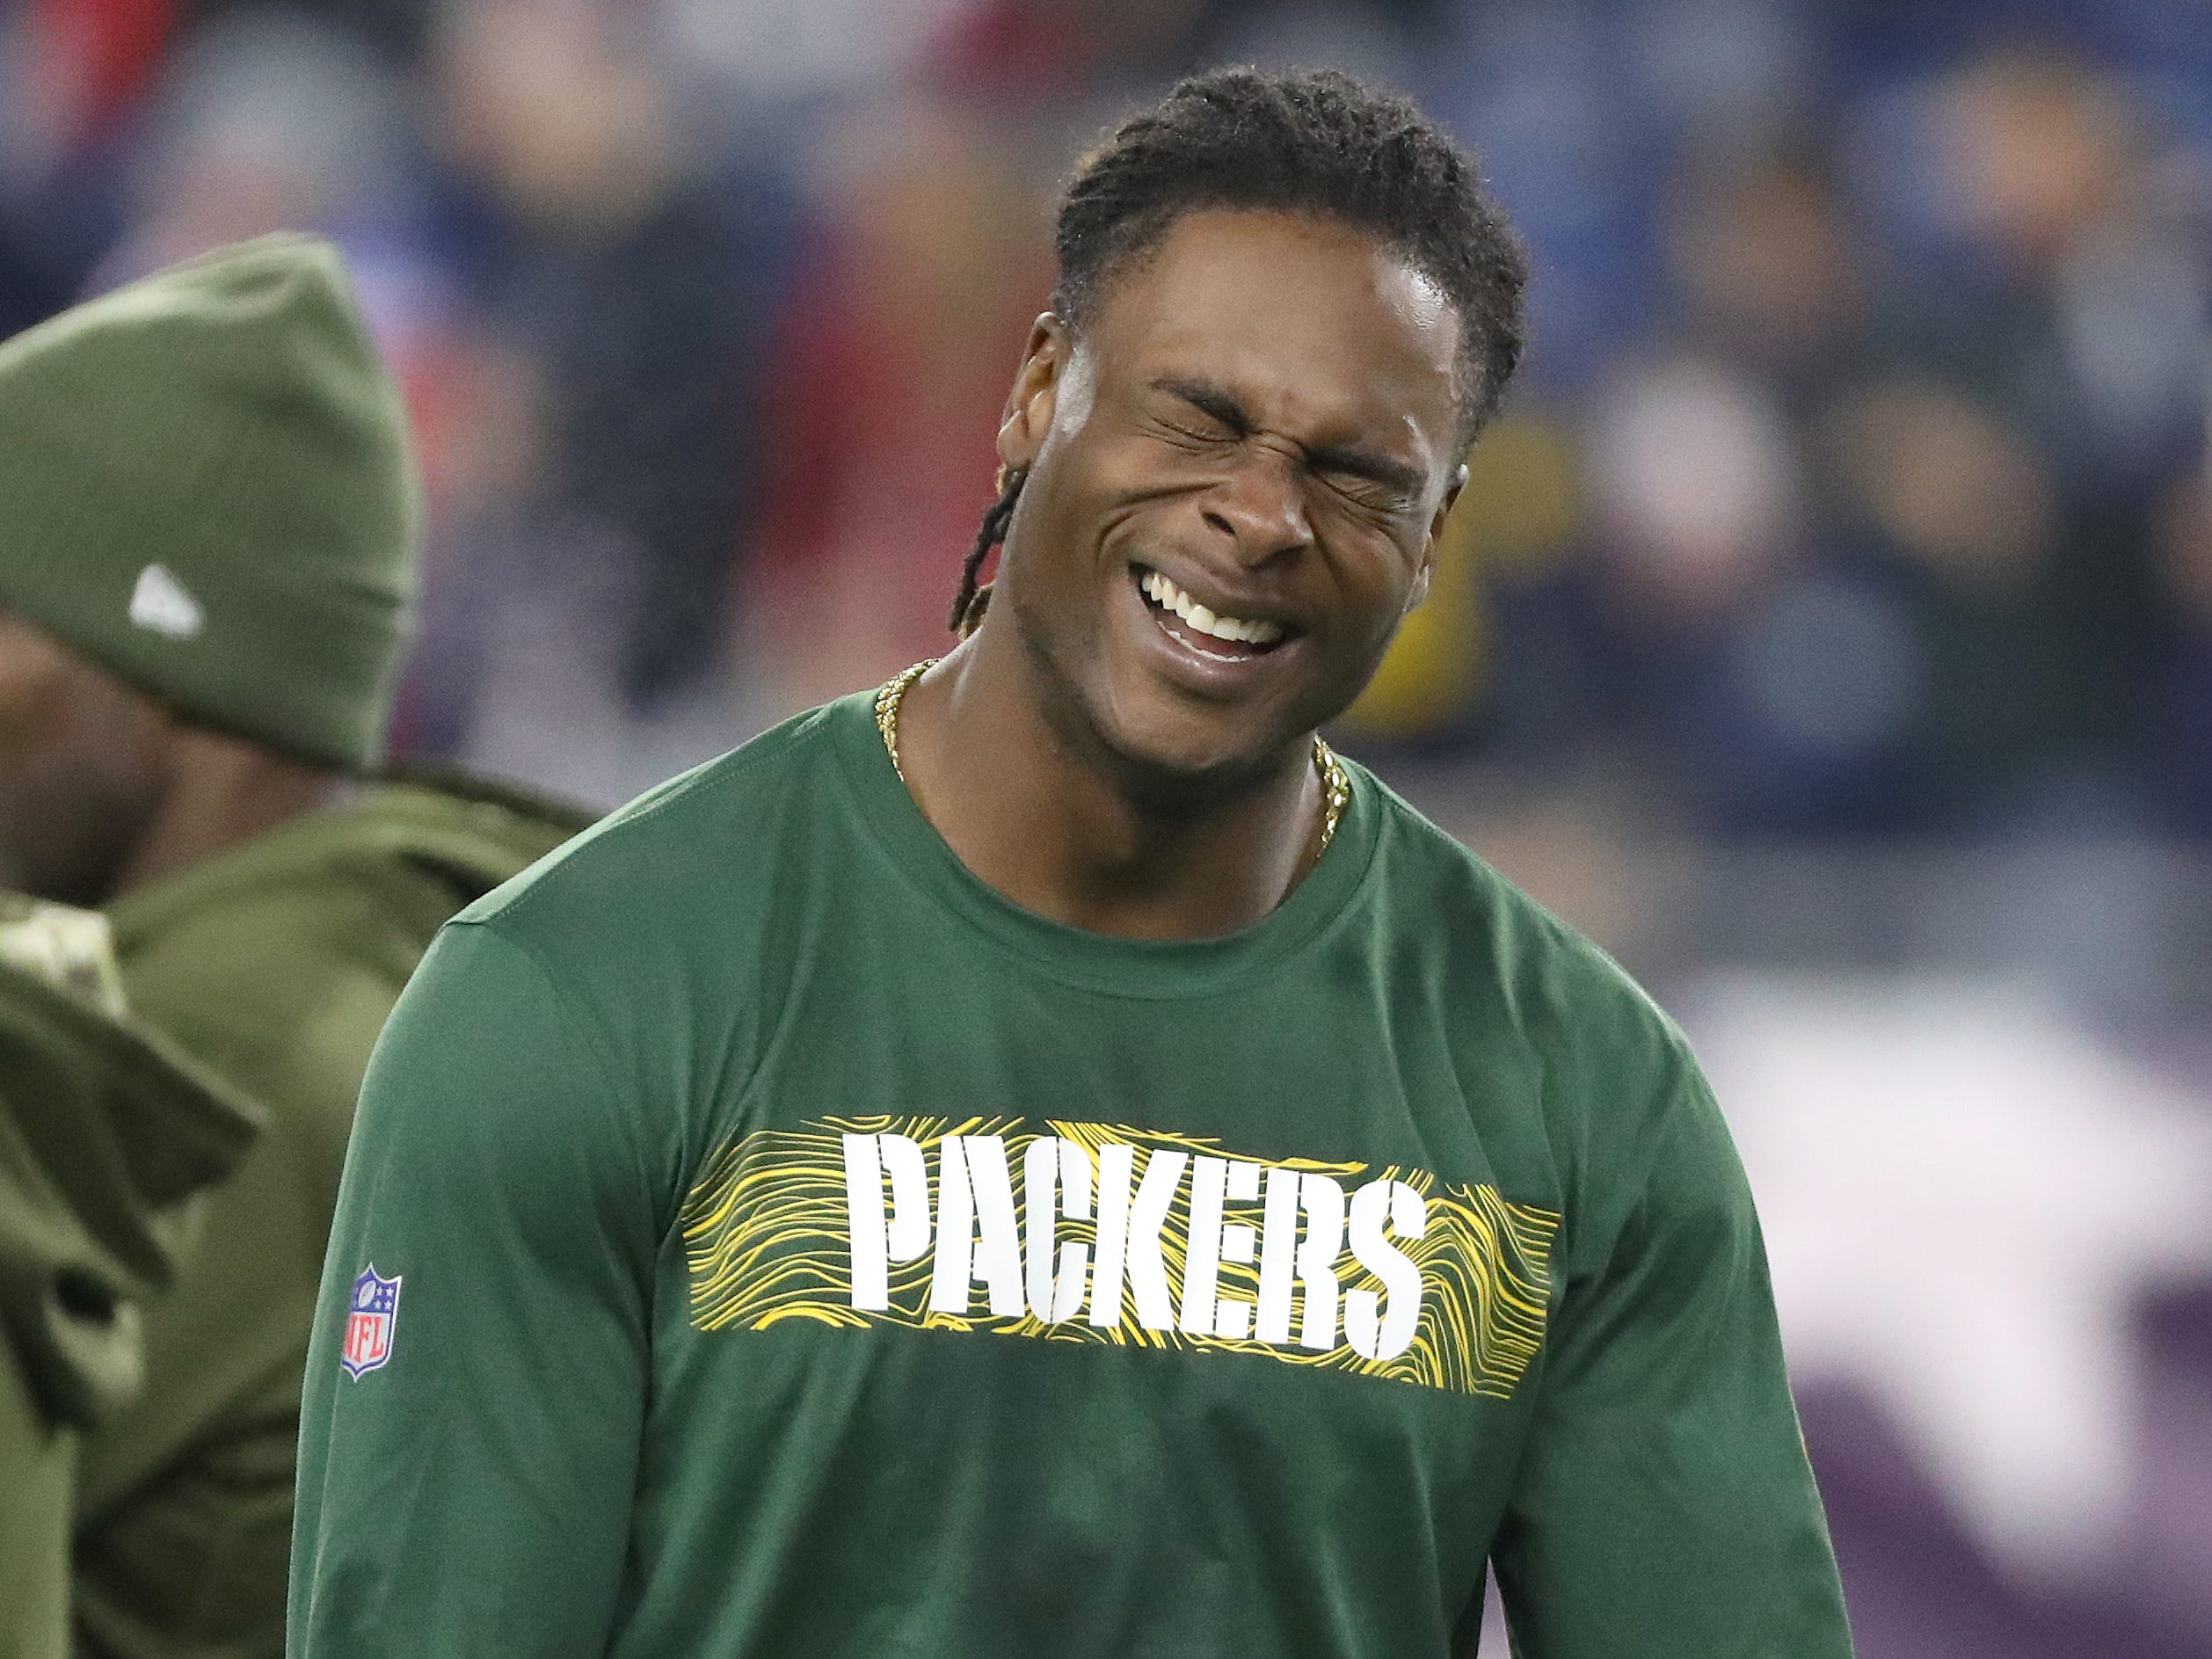 Green Bay Packers wide receiver Davante Adams (17) cracks up during warmups against the New England Patriots Sunday, November 4, 2018 at Gillette Stadium in Foxborough, Mass.